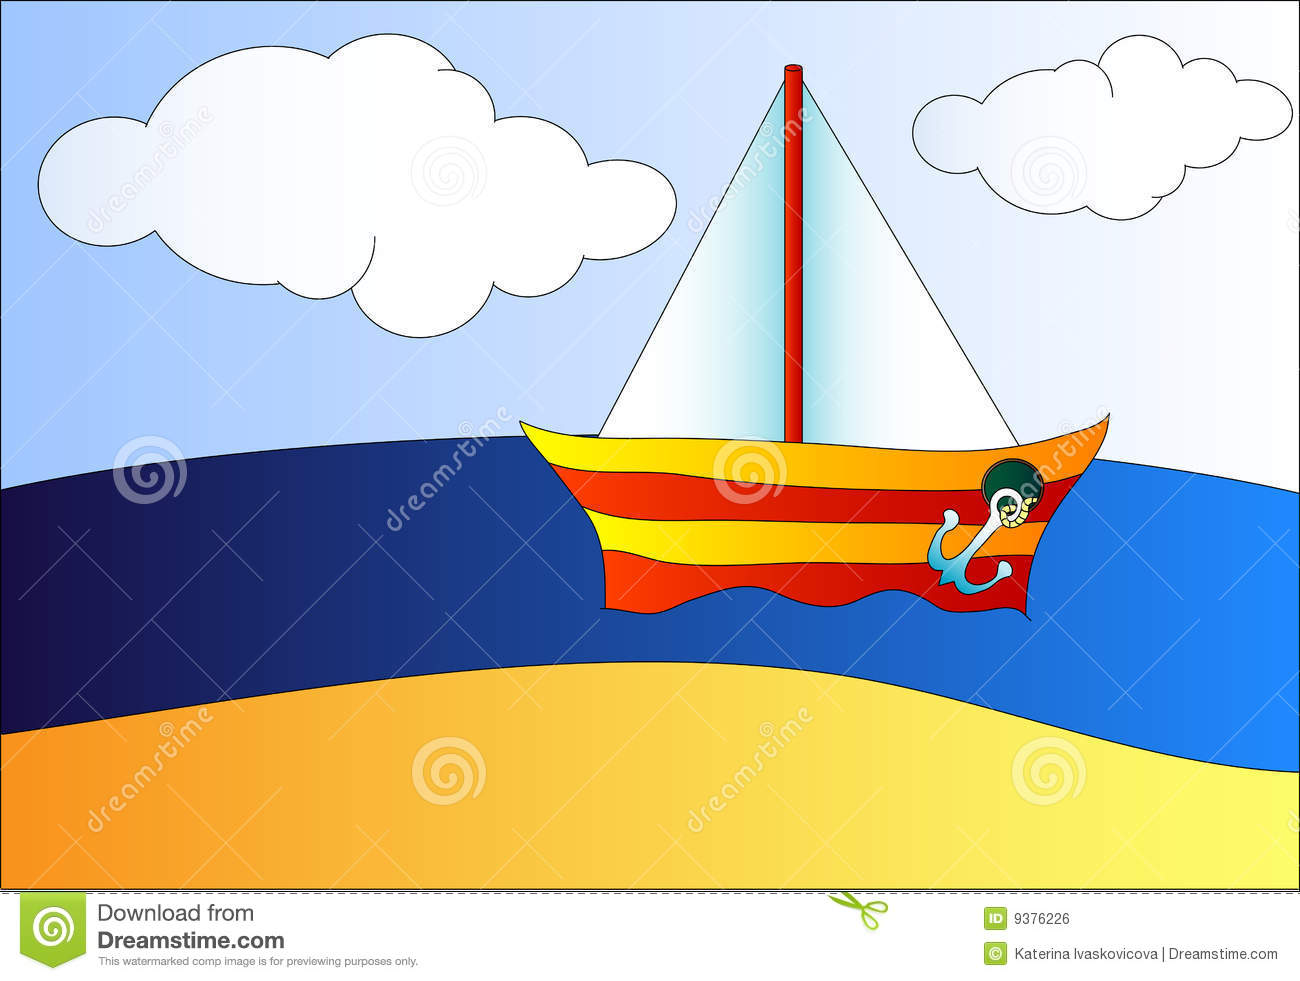 Boat On The Sea Royalty Free Stock Image - Image: 9376226